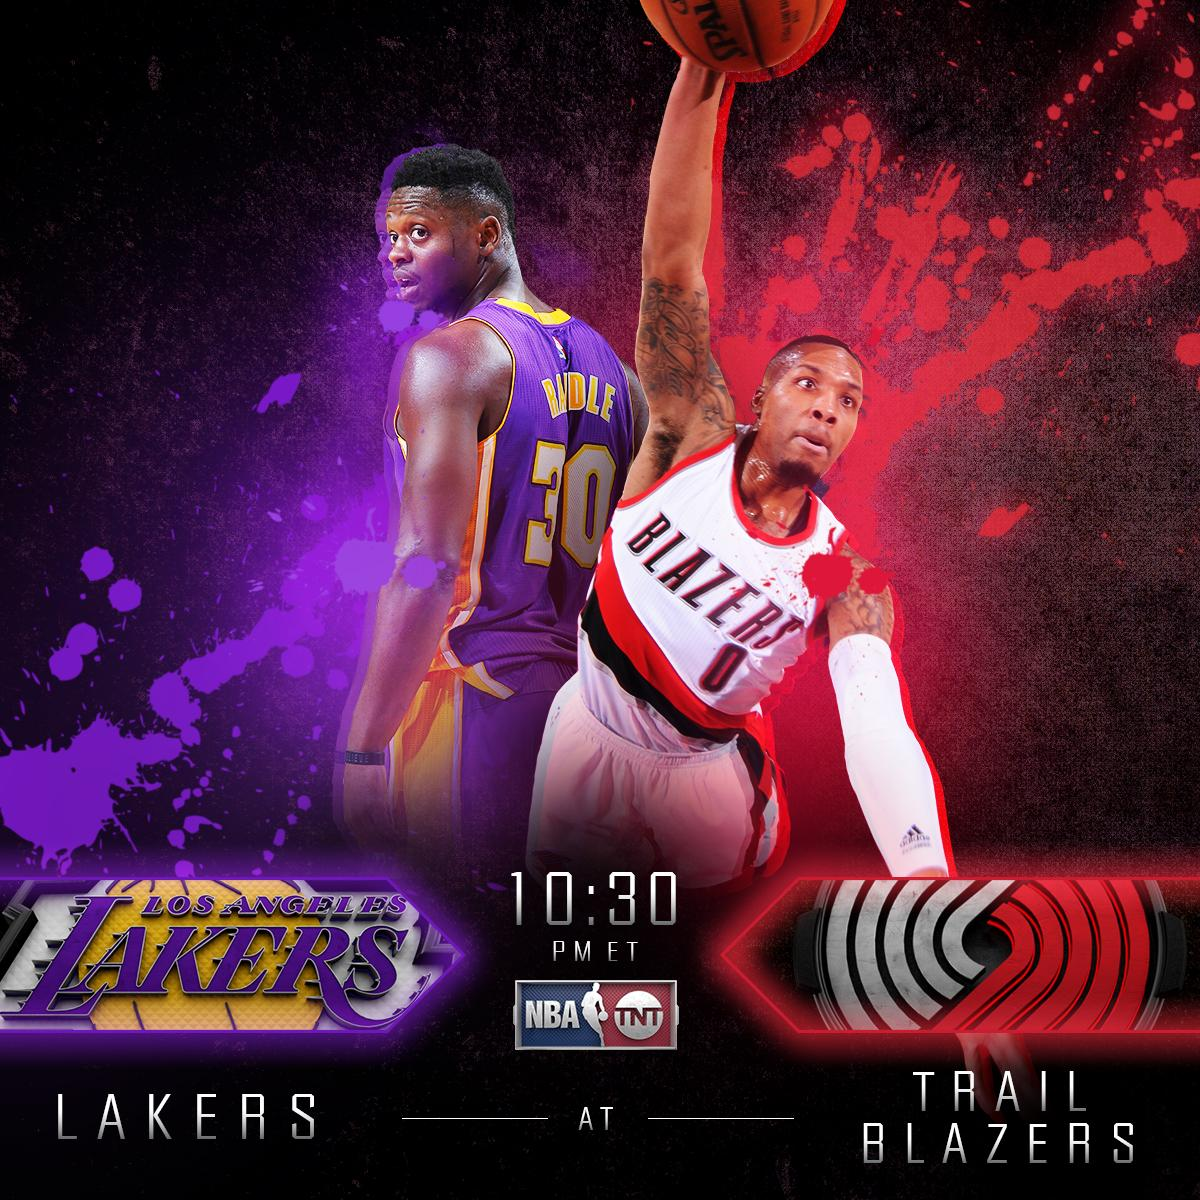 .@Dame_Lillard and the @trailblazers host @J30_RANDLE and the @Lakers NEXT on TNT! https://t.co/HvzJaiu68O